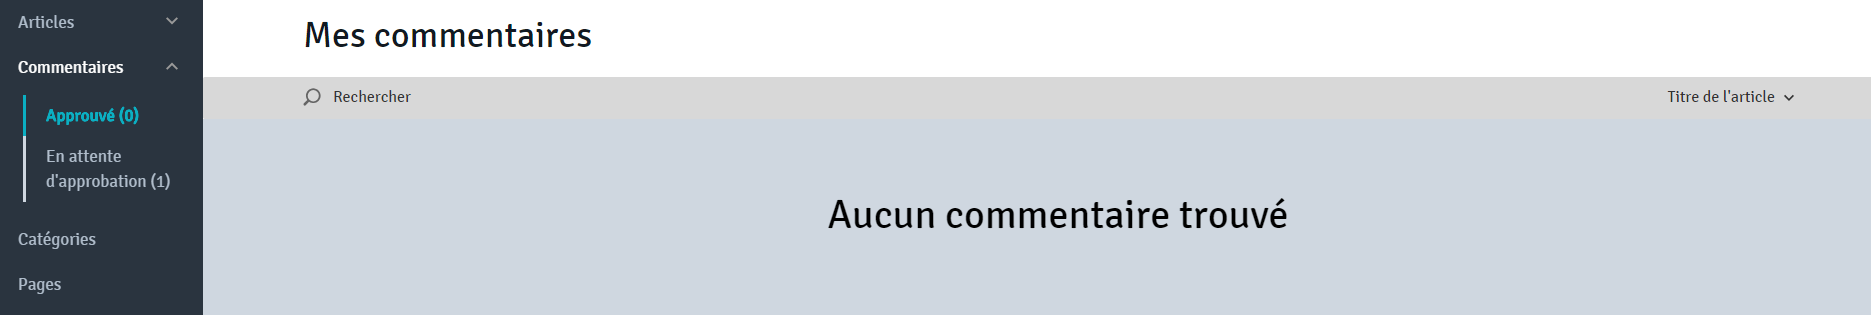 commentaires.png